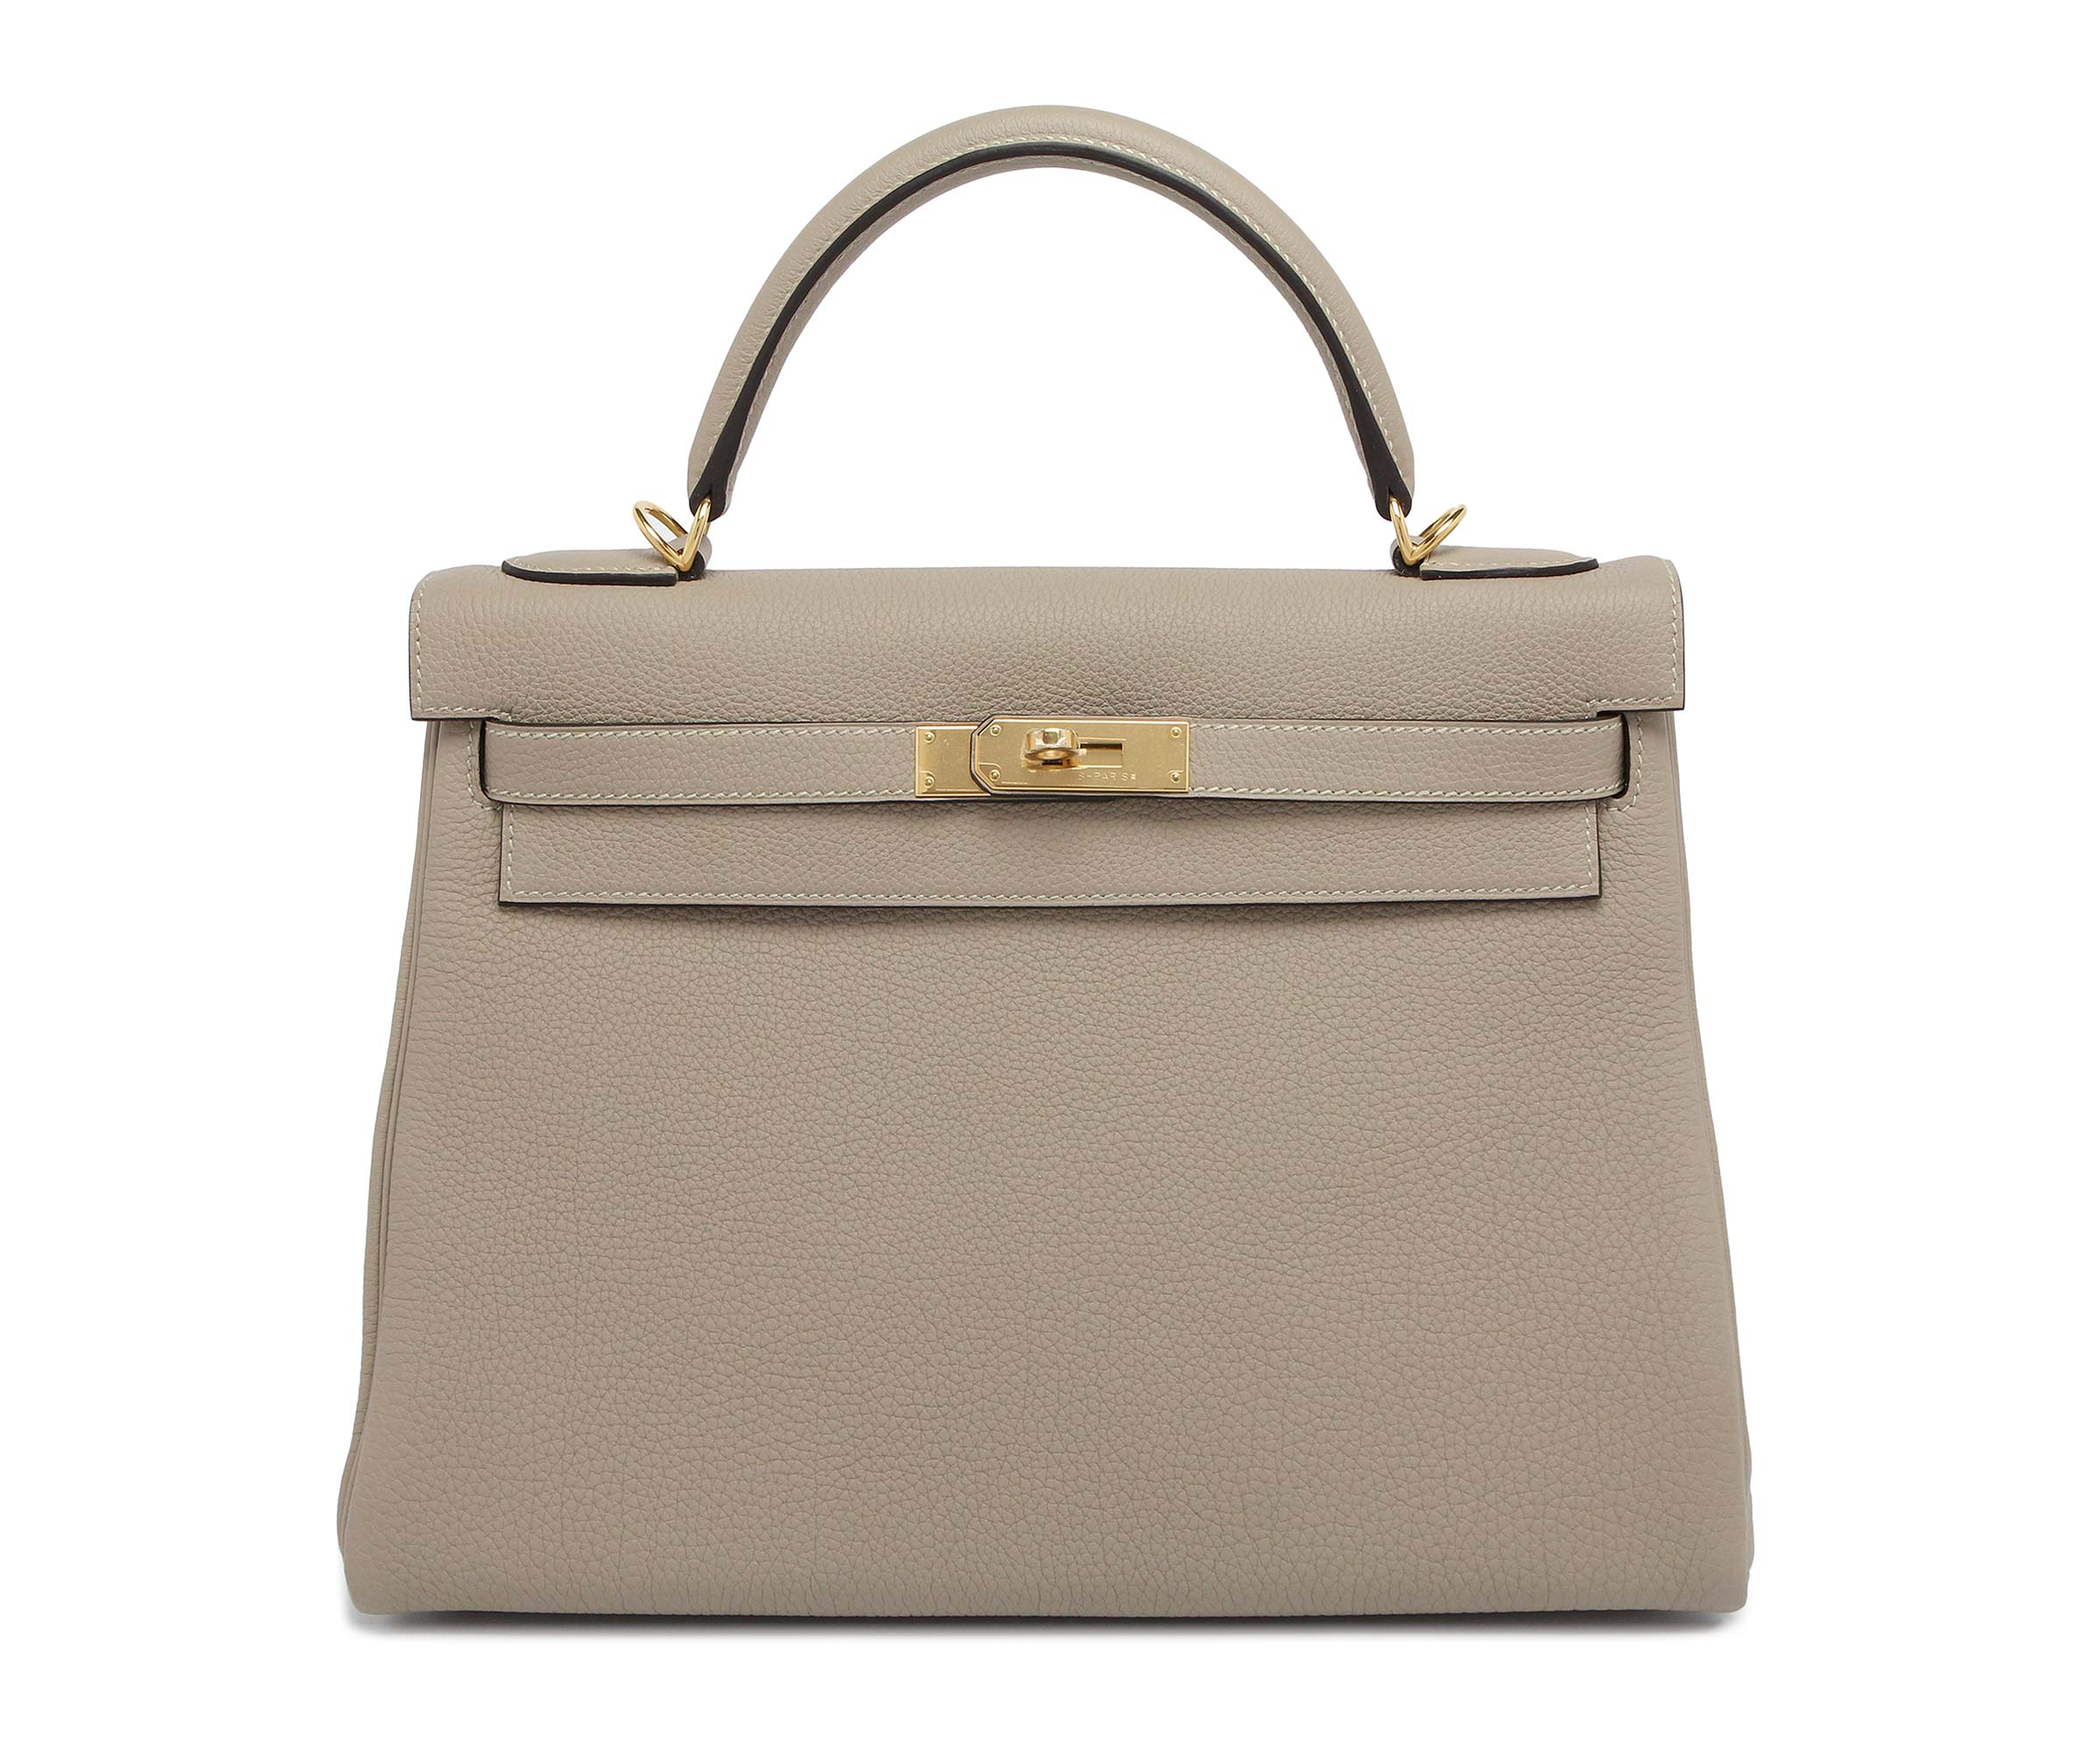 Hermes Kelly Gris Togo with Gold